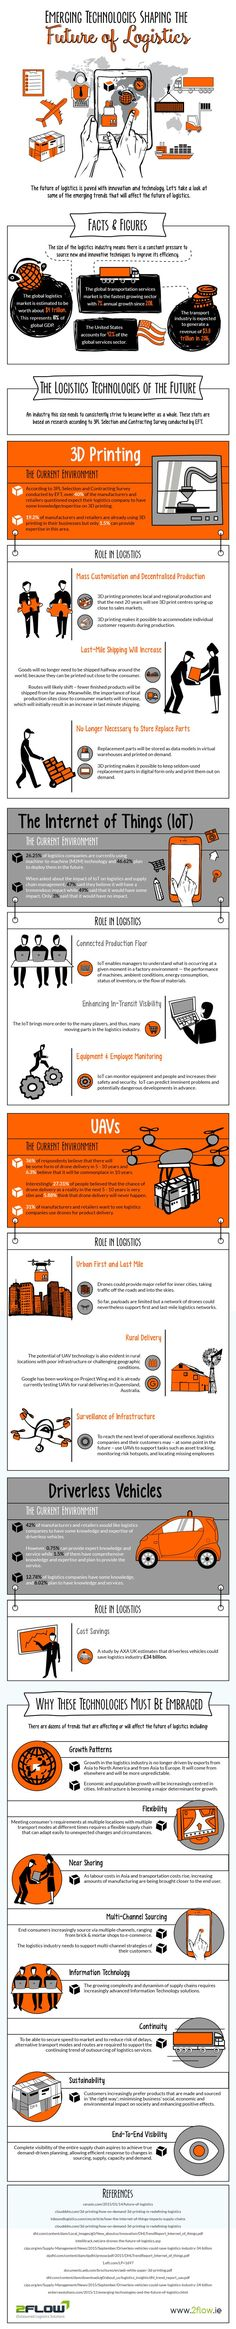 How Are Emerging Technologies Shaping The Future Of Logistics? #infographic